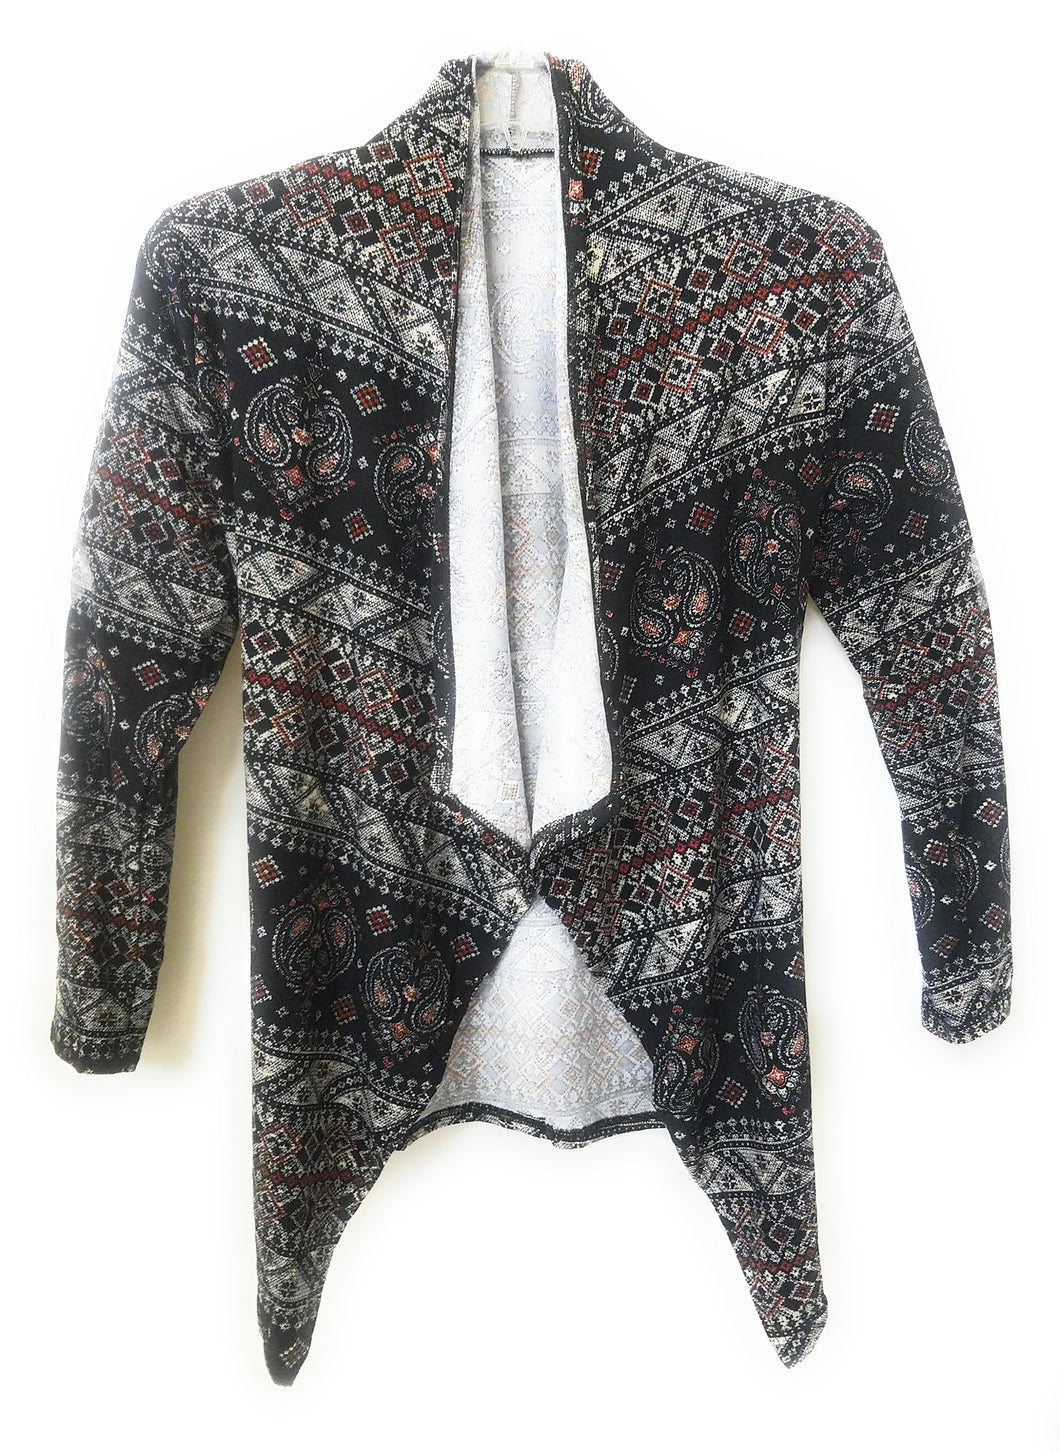 Lida Lightweight Abstract Aztec Geometric Paisley Western Jacket Coat Cardigan Black Red White